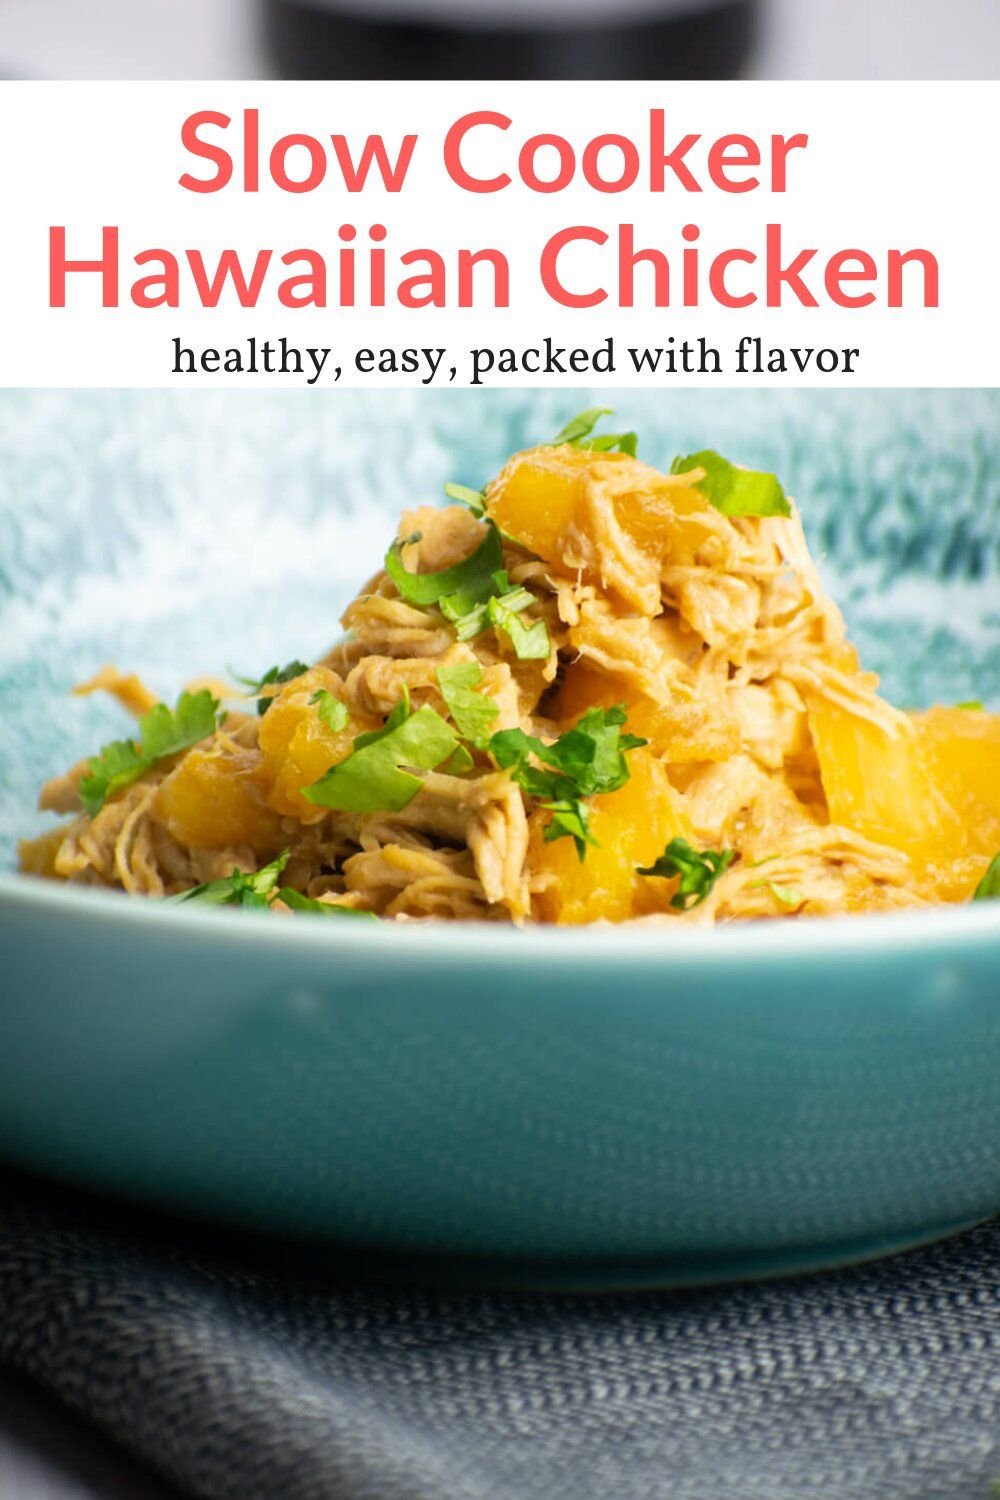 Slow Cooker Hawaiian Chicken Recipe Food Recipes Slow Cooker Recipes Cooking